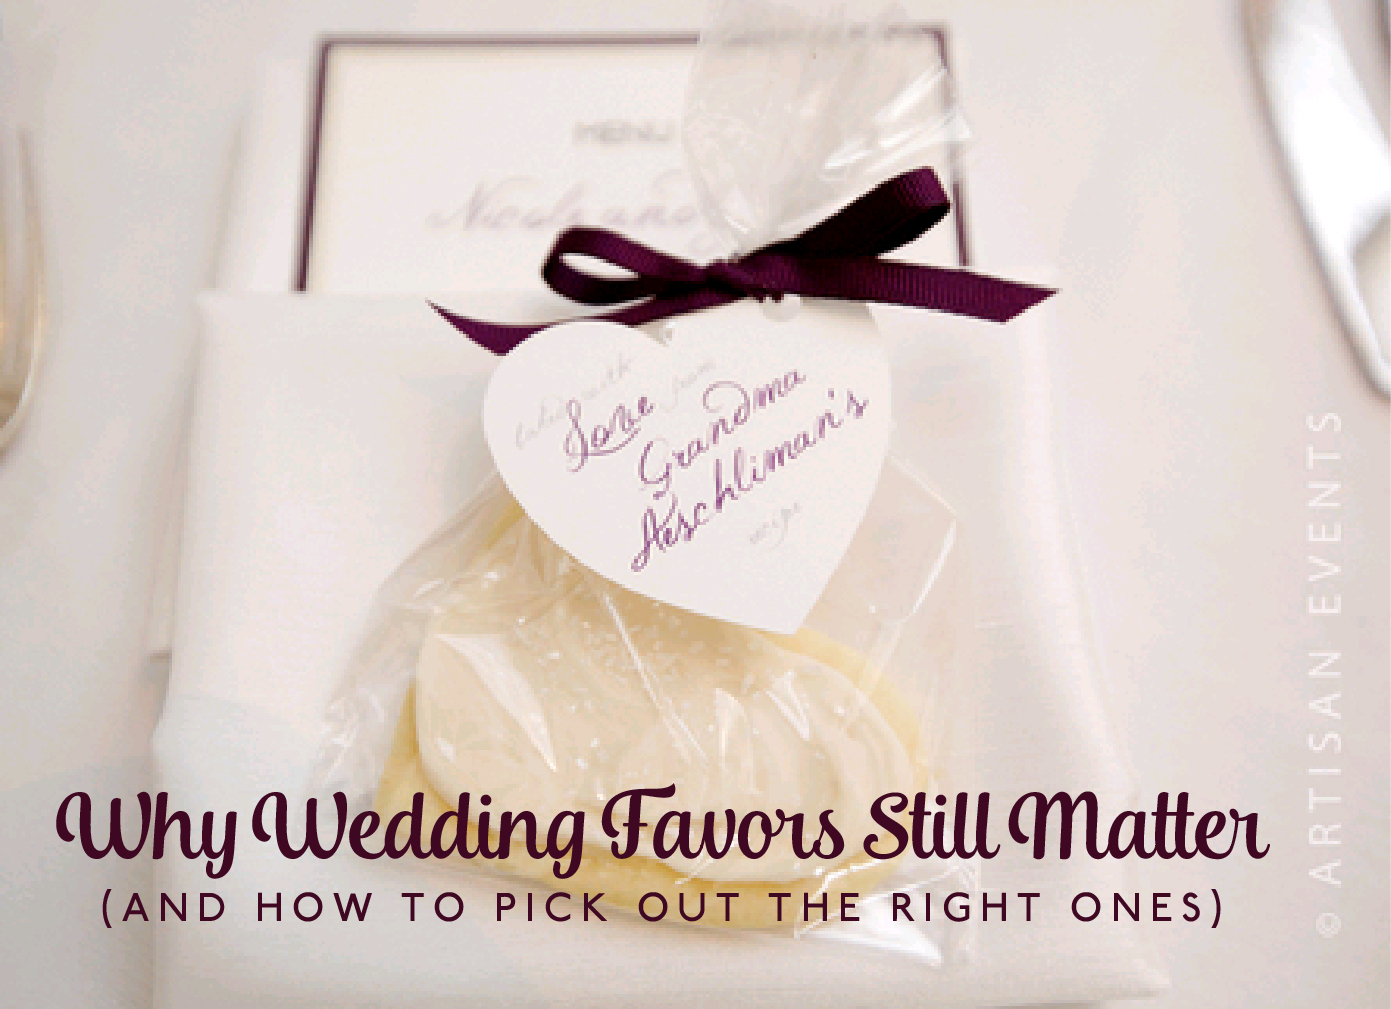 WeddingFavors